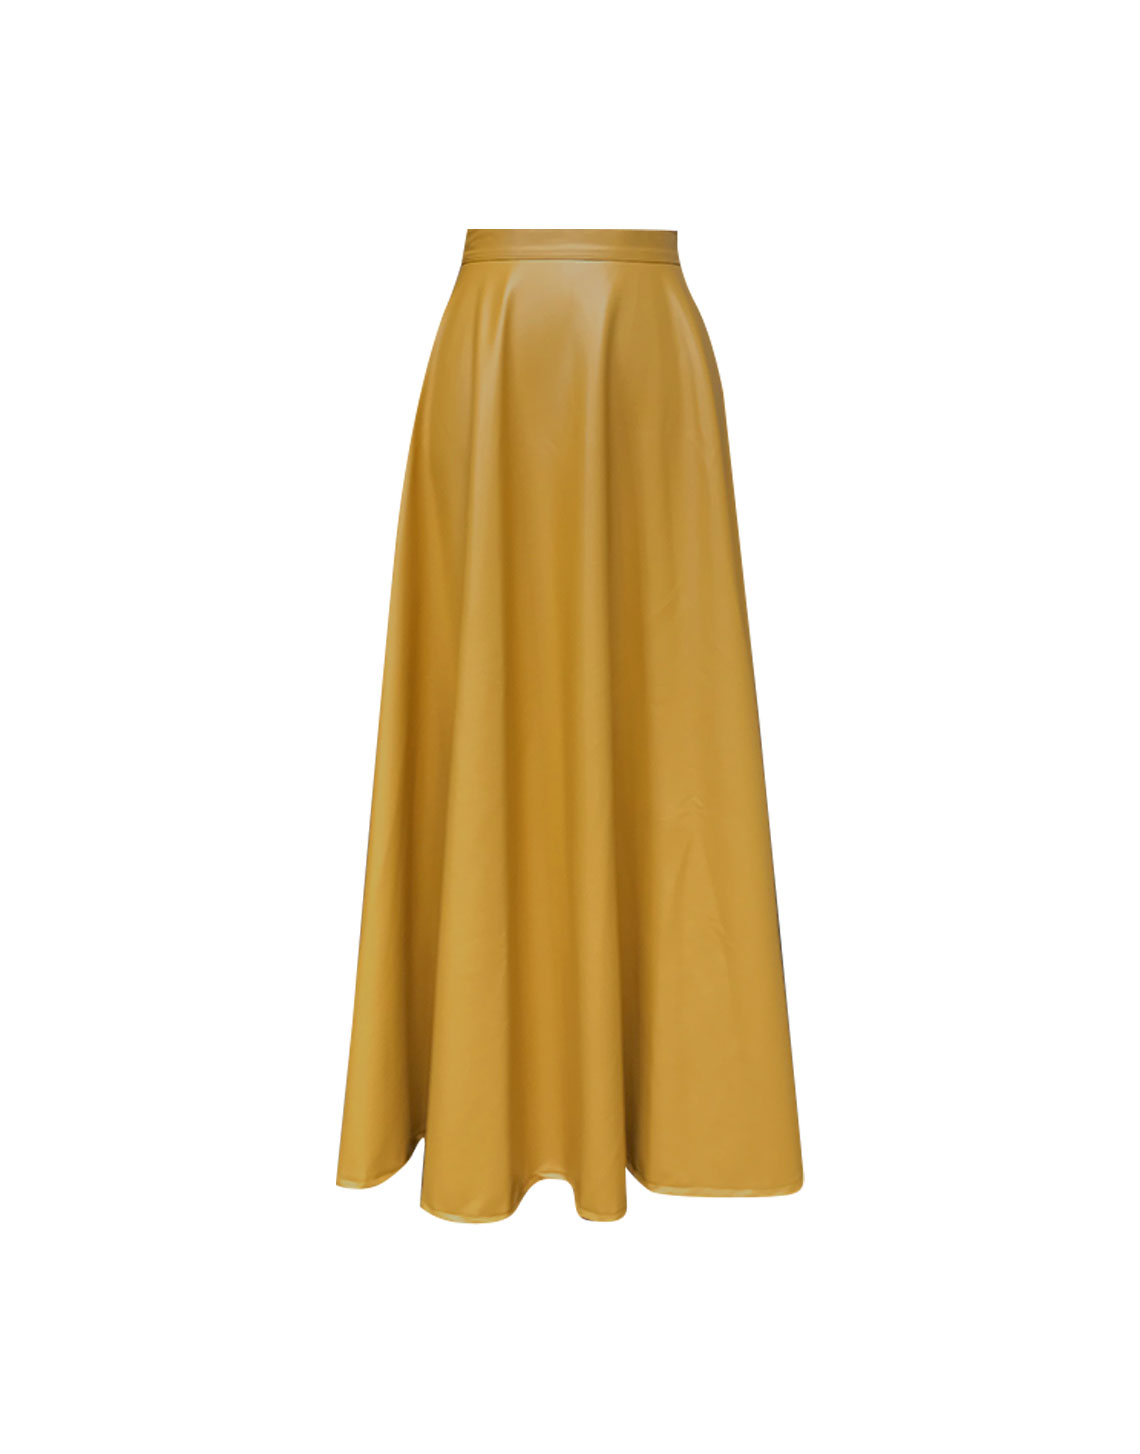 New Hibiscus Skirt - Yellow by Jessica K on curated-crowd.com